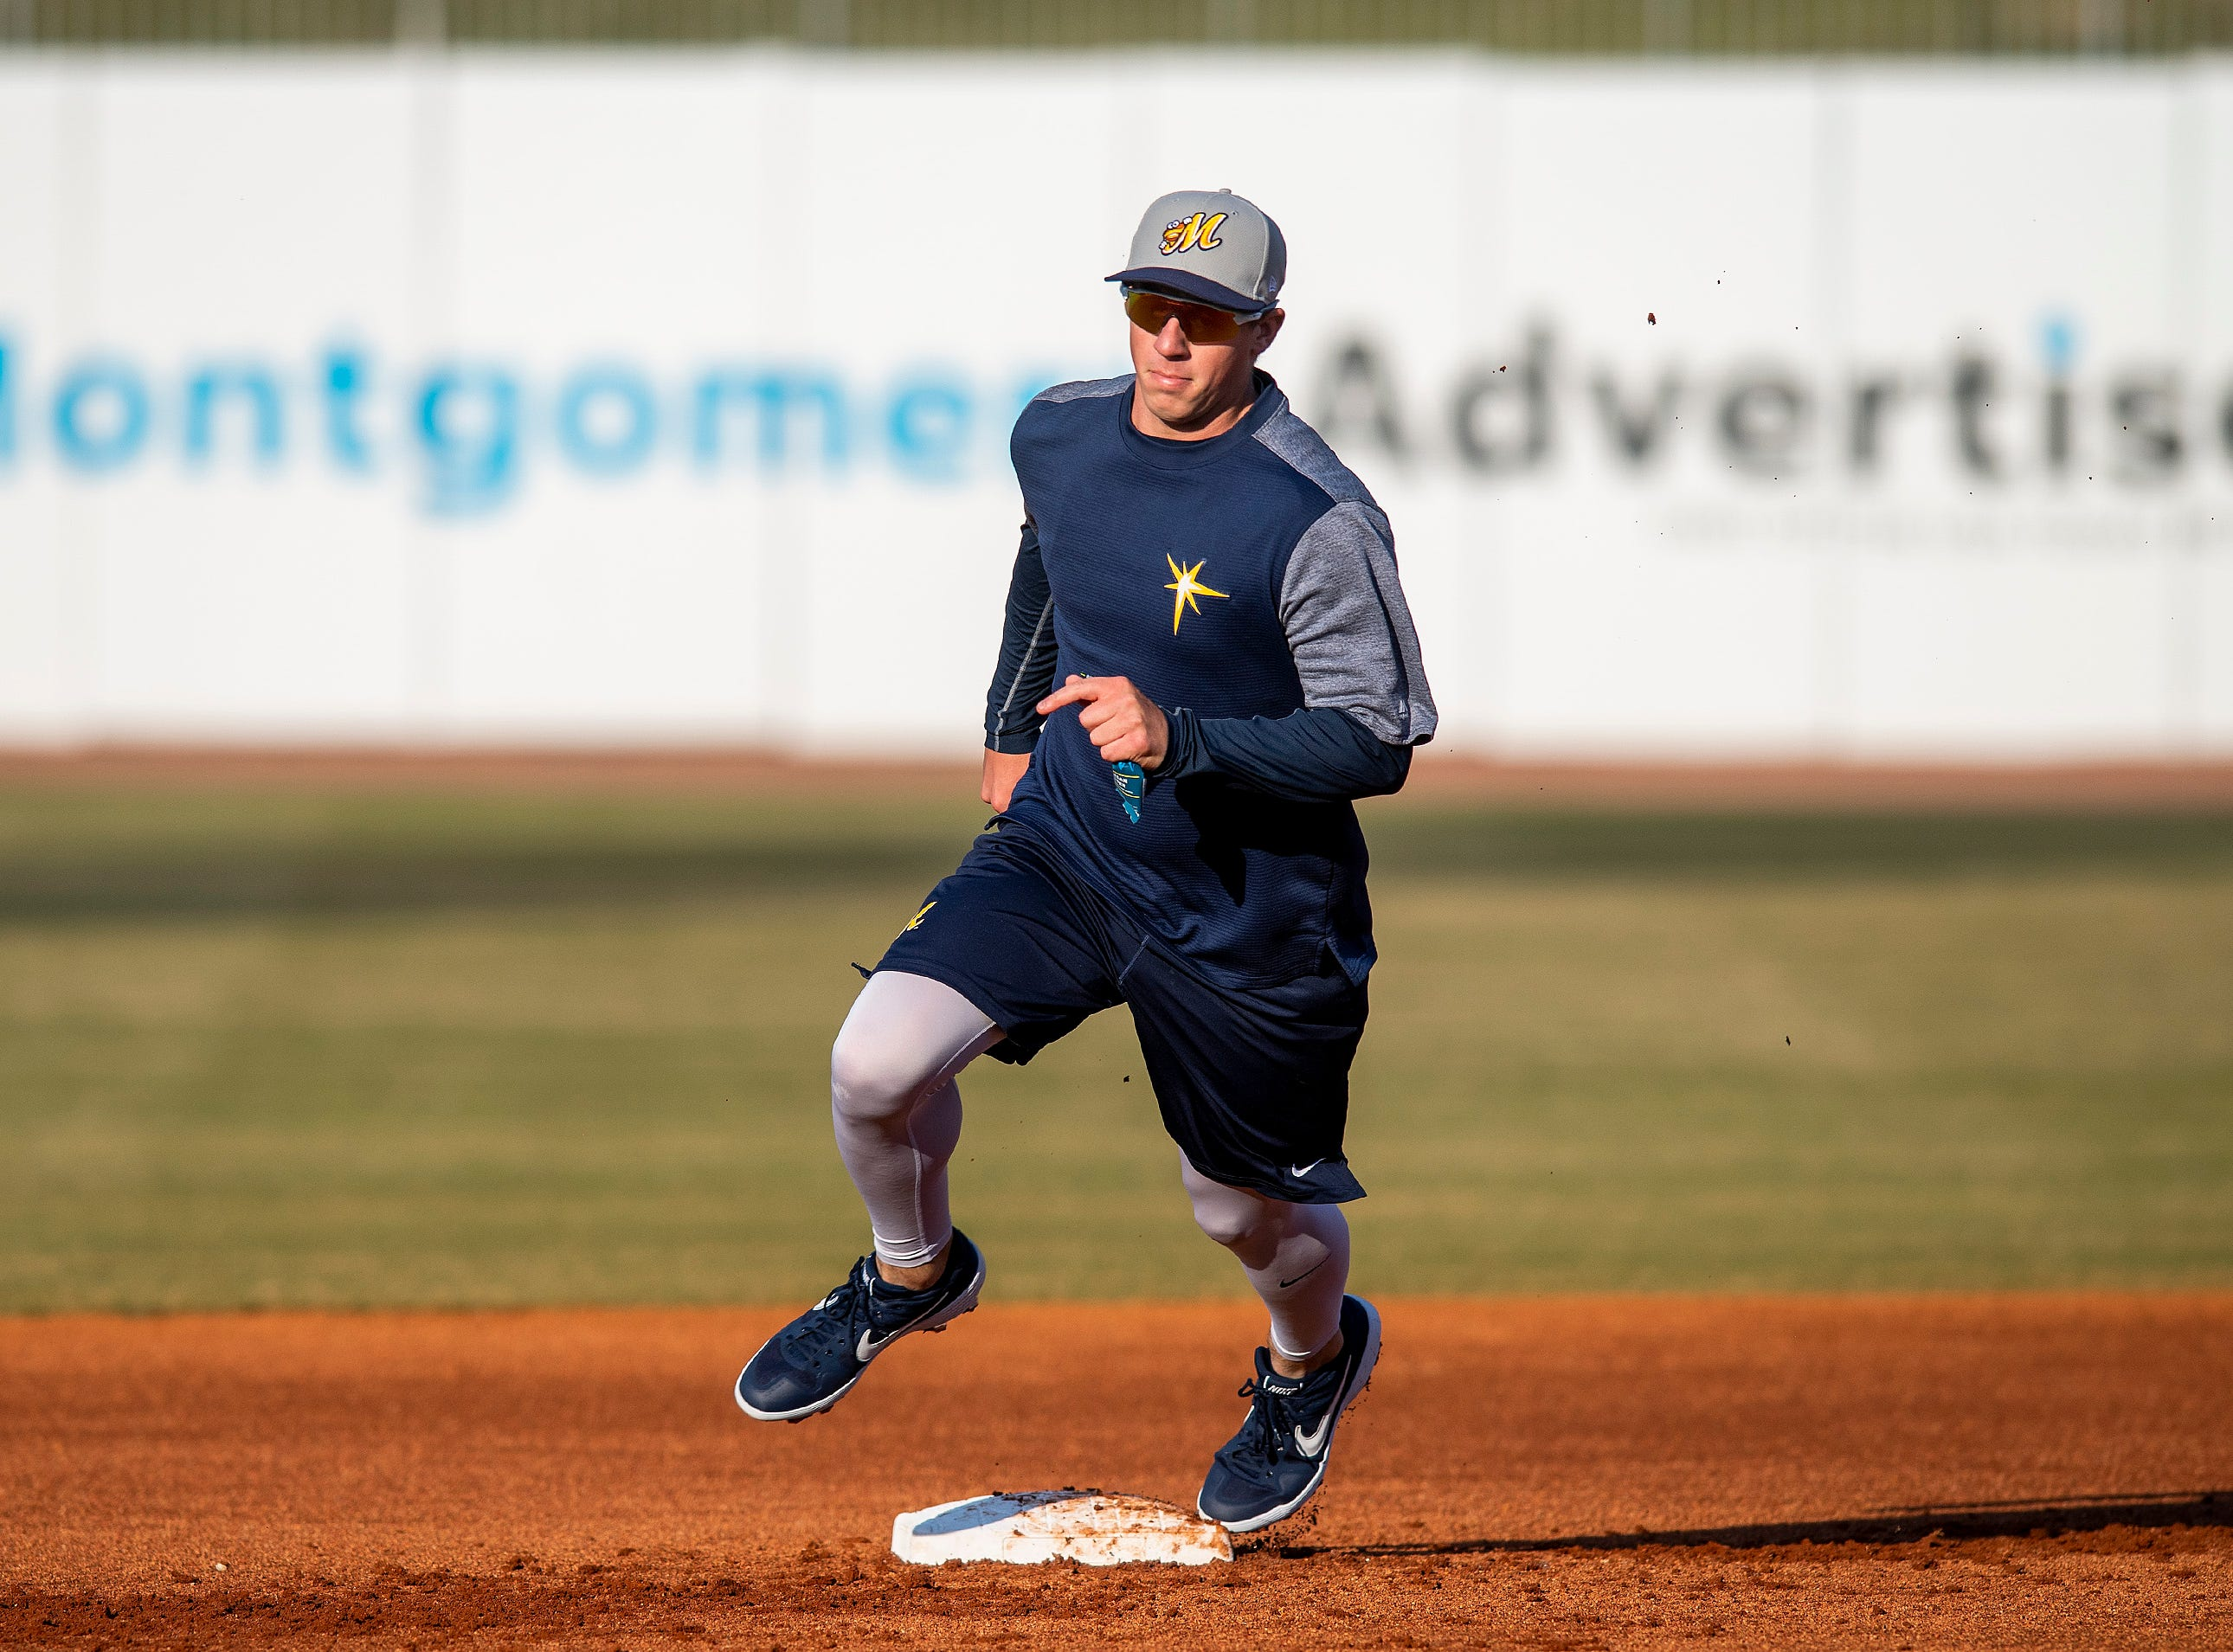 2-in-1: Biscuits' McKay strives to be rare 2-way major league star